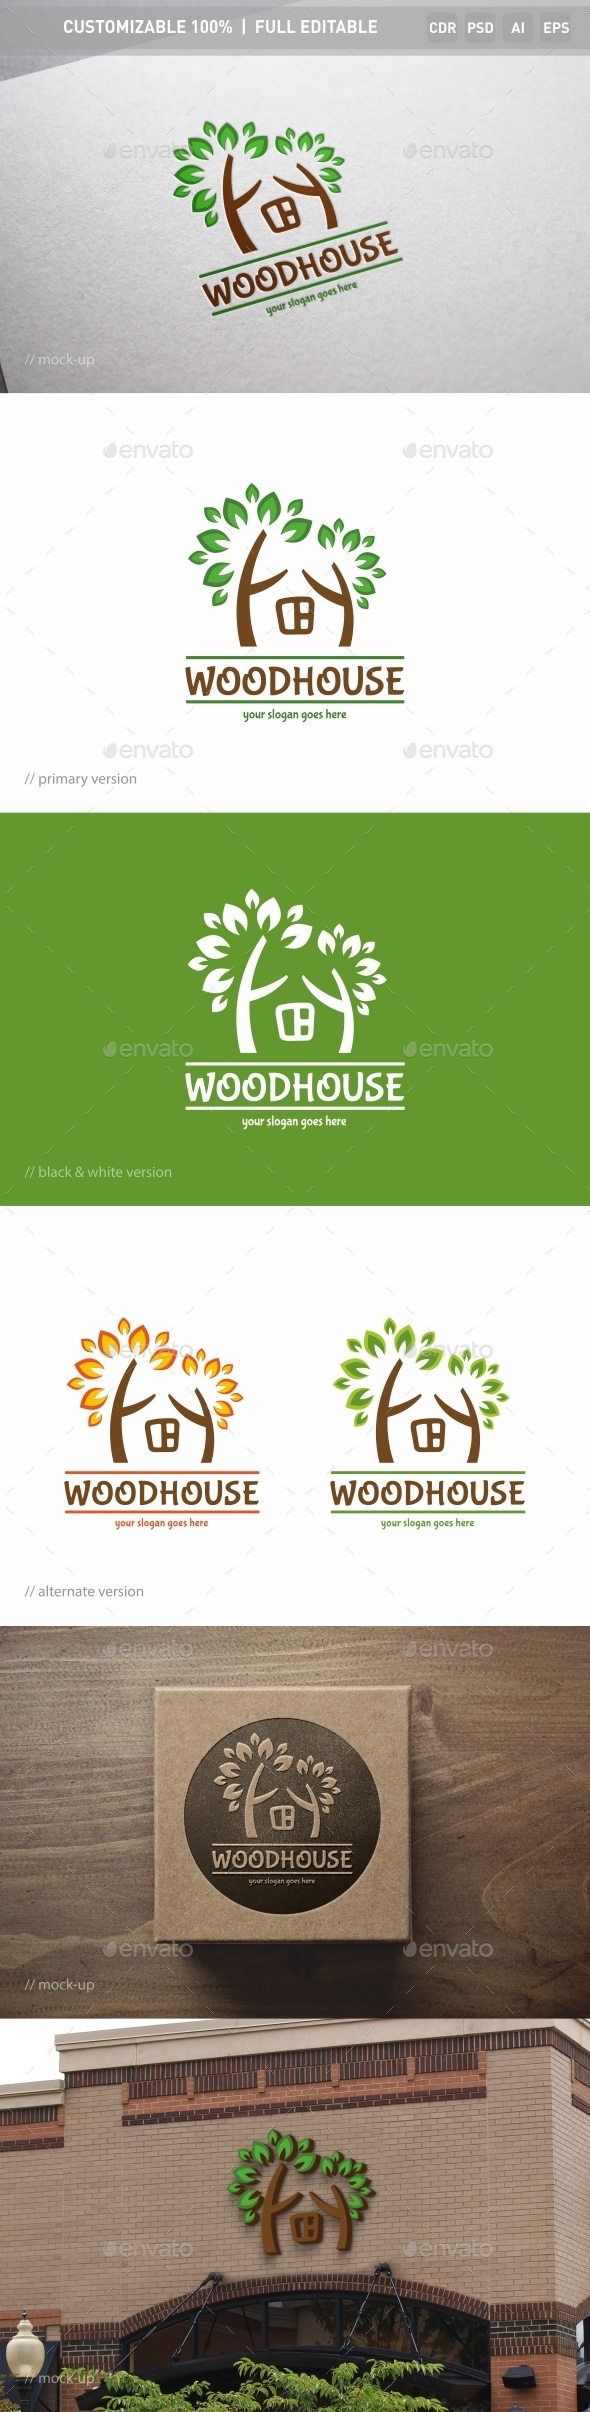 Woodhouse Logo Template